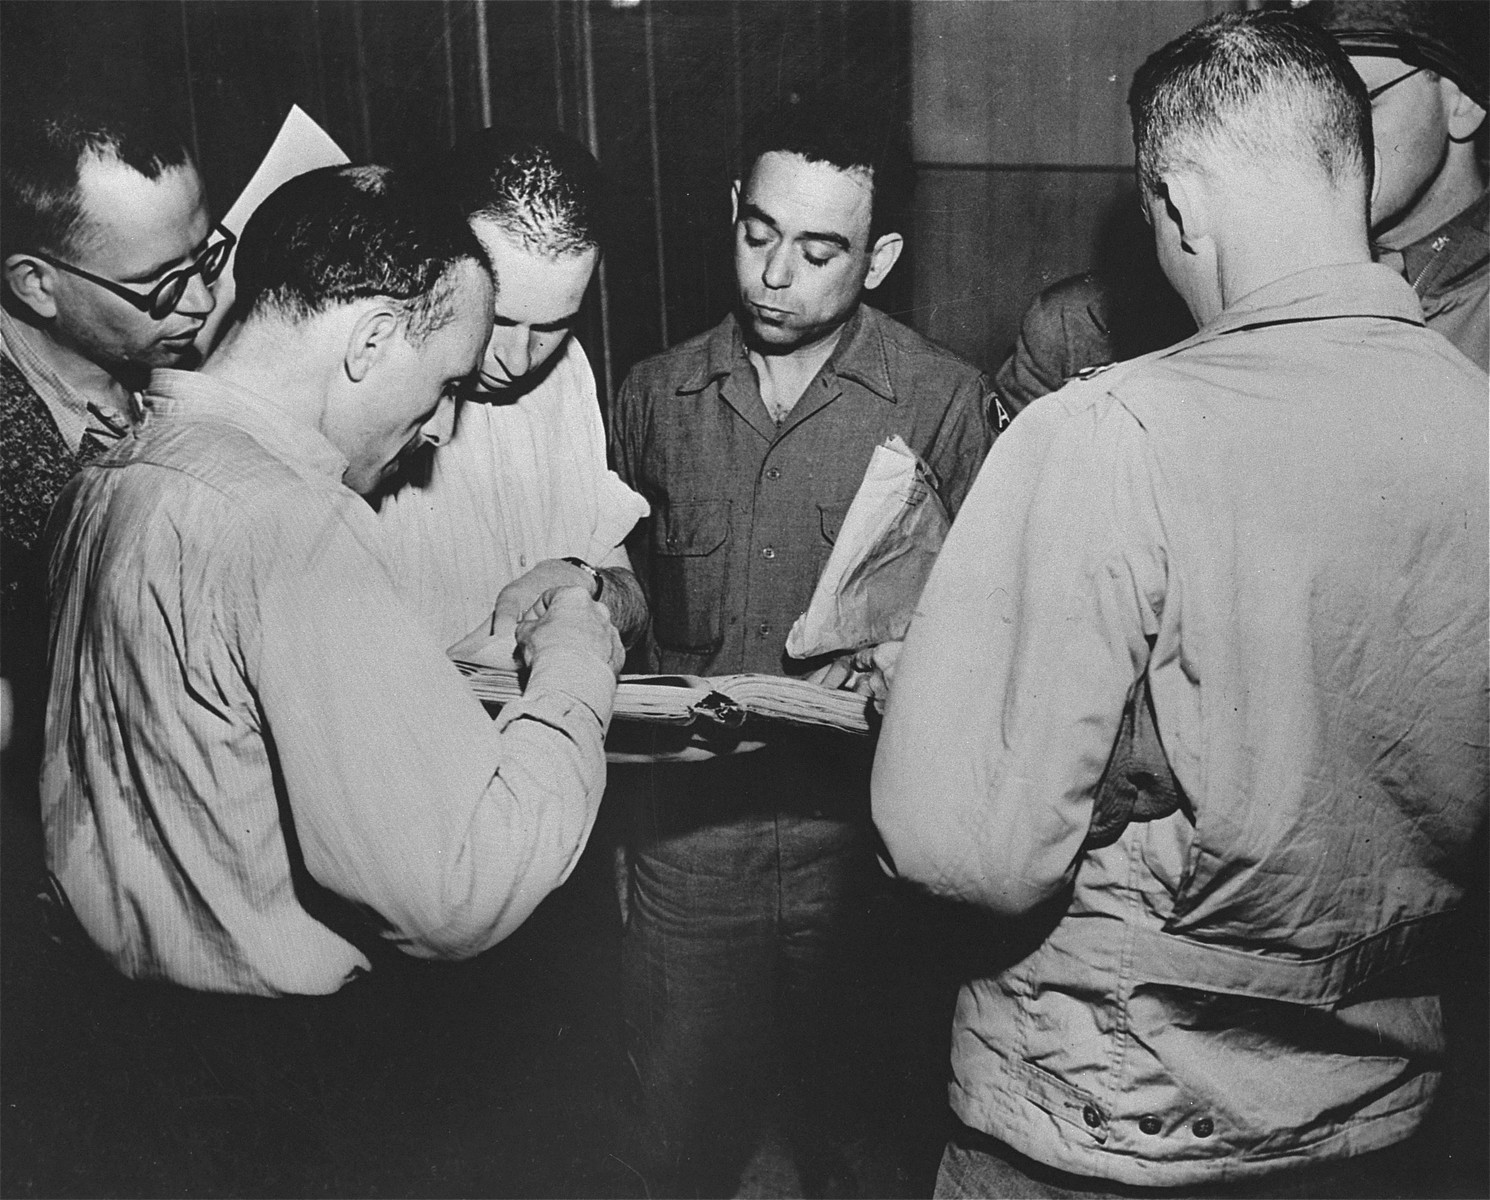 Corporal Jack R. Nowitz (center), a lawyer on the staff of the Judge Advocate General, 3rd U.S. Army, checks books listing exterminations at Gusen.